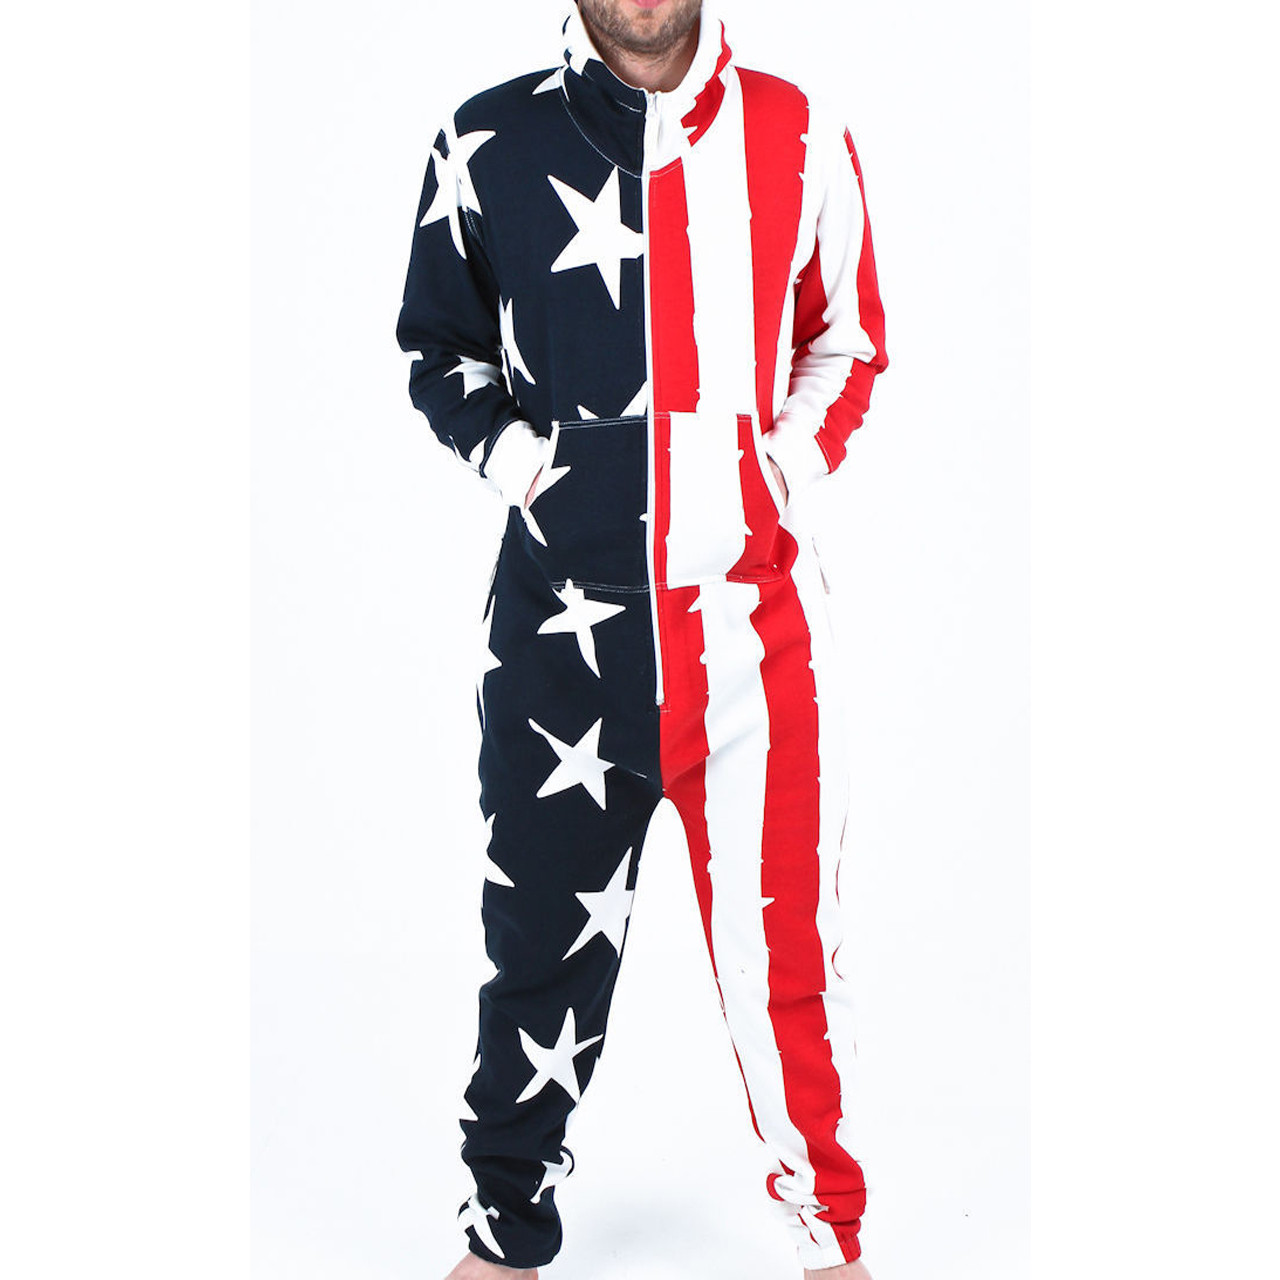 657d909dfbb0 Mens Red White Blue Onesie Non Footed Zipper Hoodie Tracksuit ...